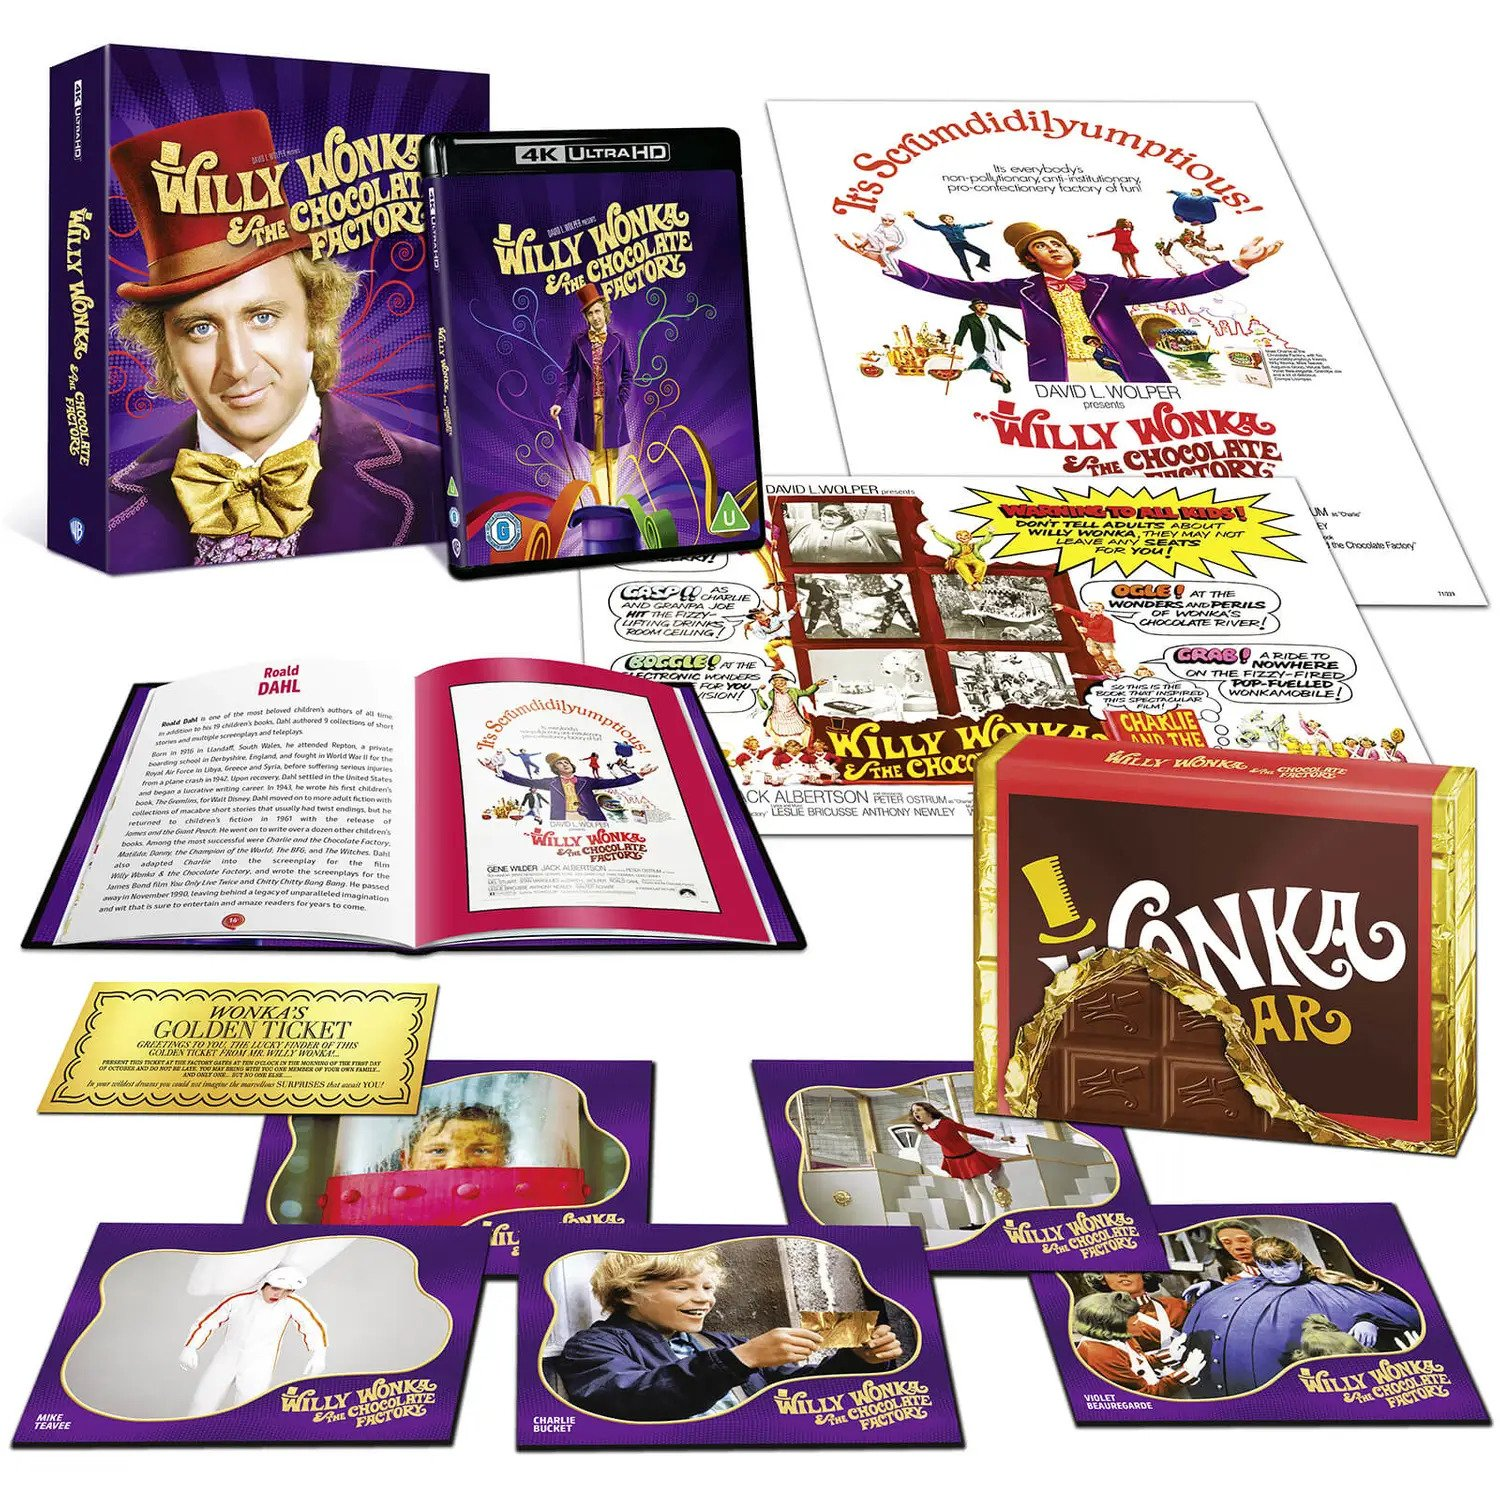 Willy Wonka Collector'S edition.jpg